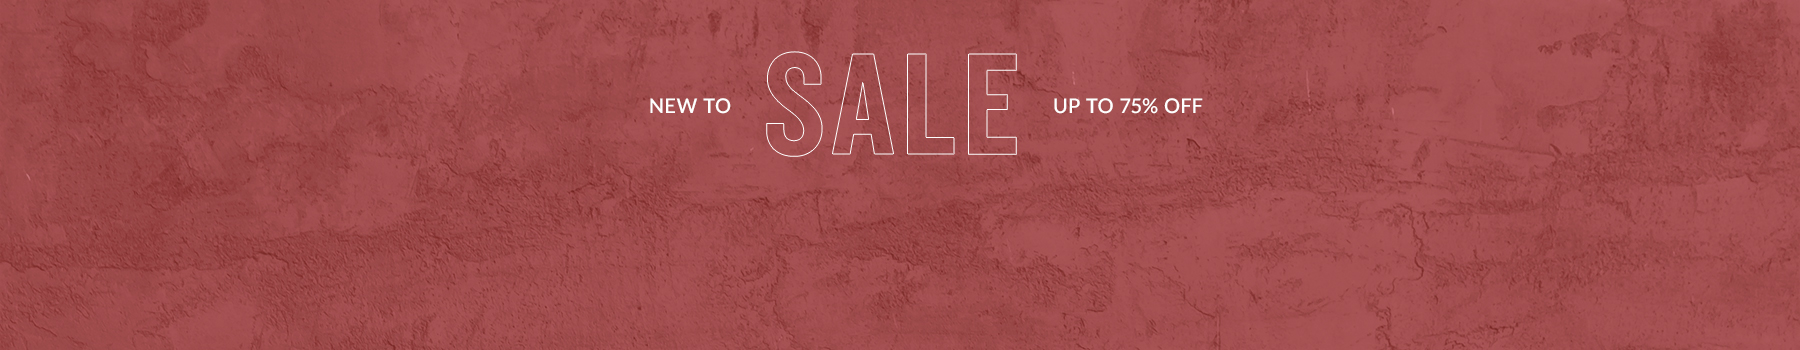 New to sale up to 50% off